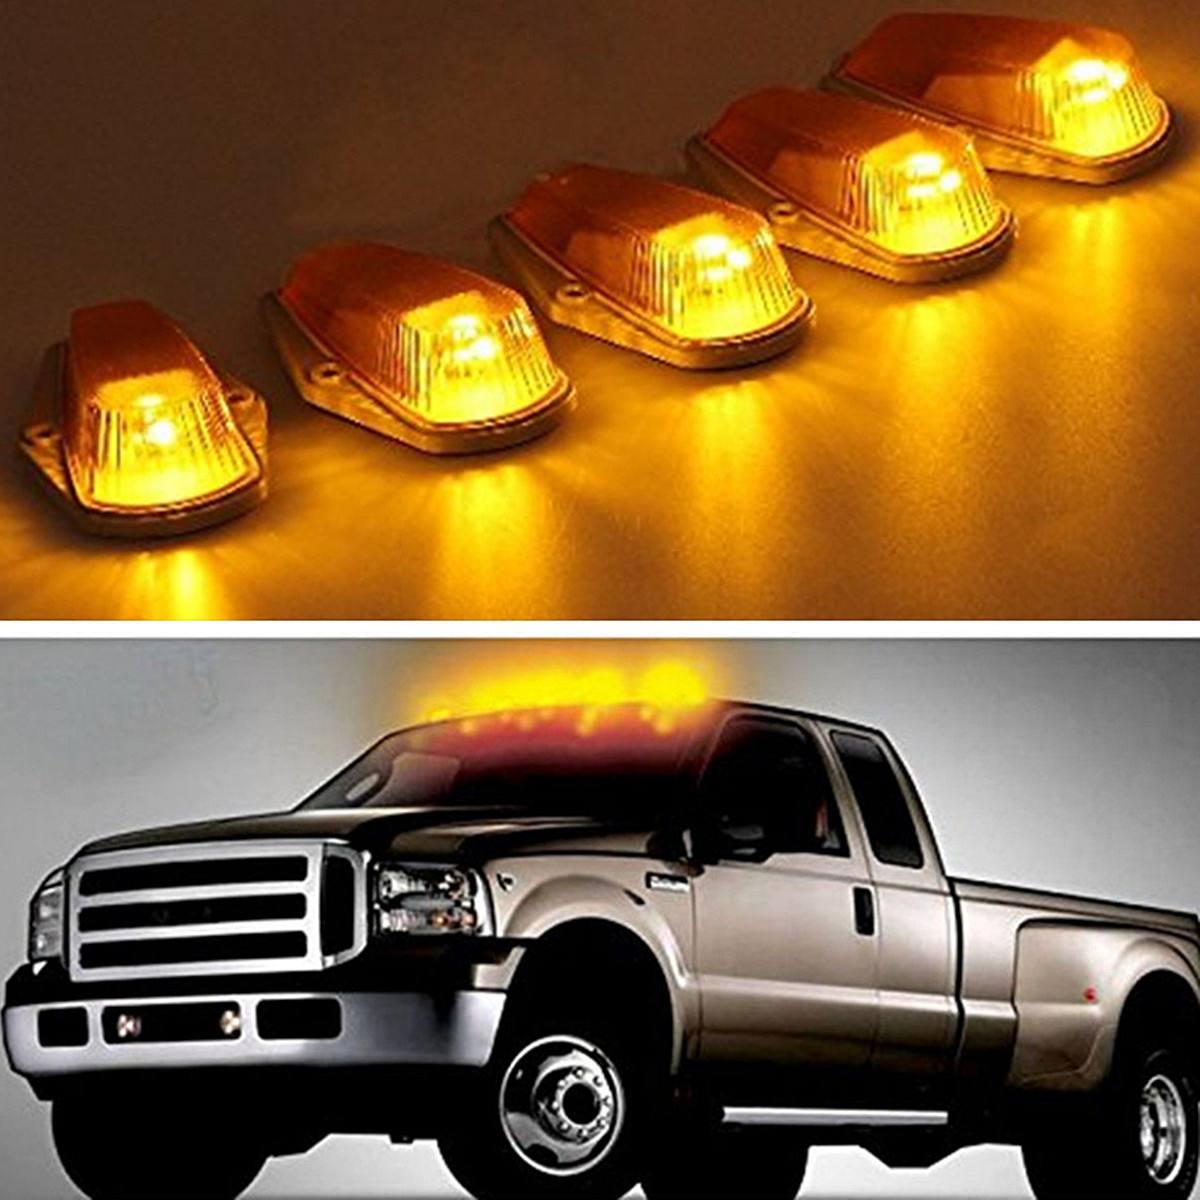 Cab Marker Top Roof Light Cover 5x Transparent For Ford 1980 1997 F150 Truck Brush Guards F250 F350 No Lights Abs Pc Uv Resistant Waterproof 12v In Car Assembly From